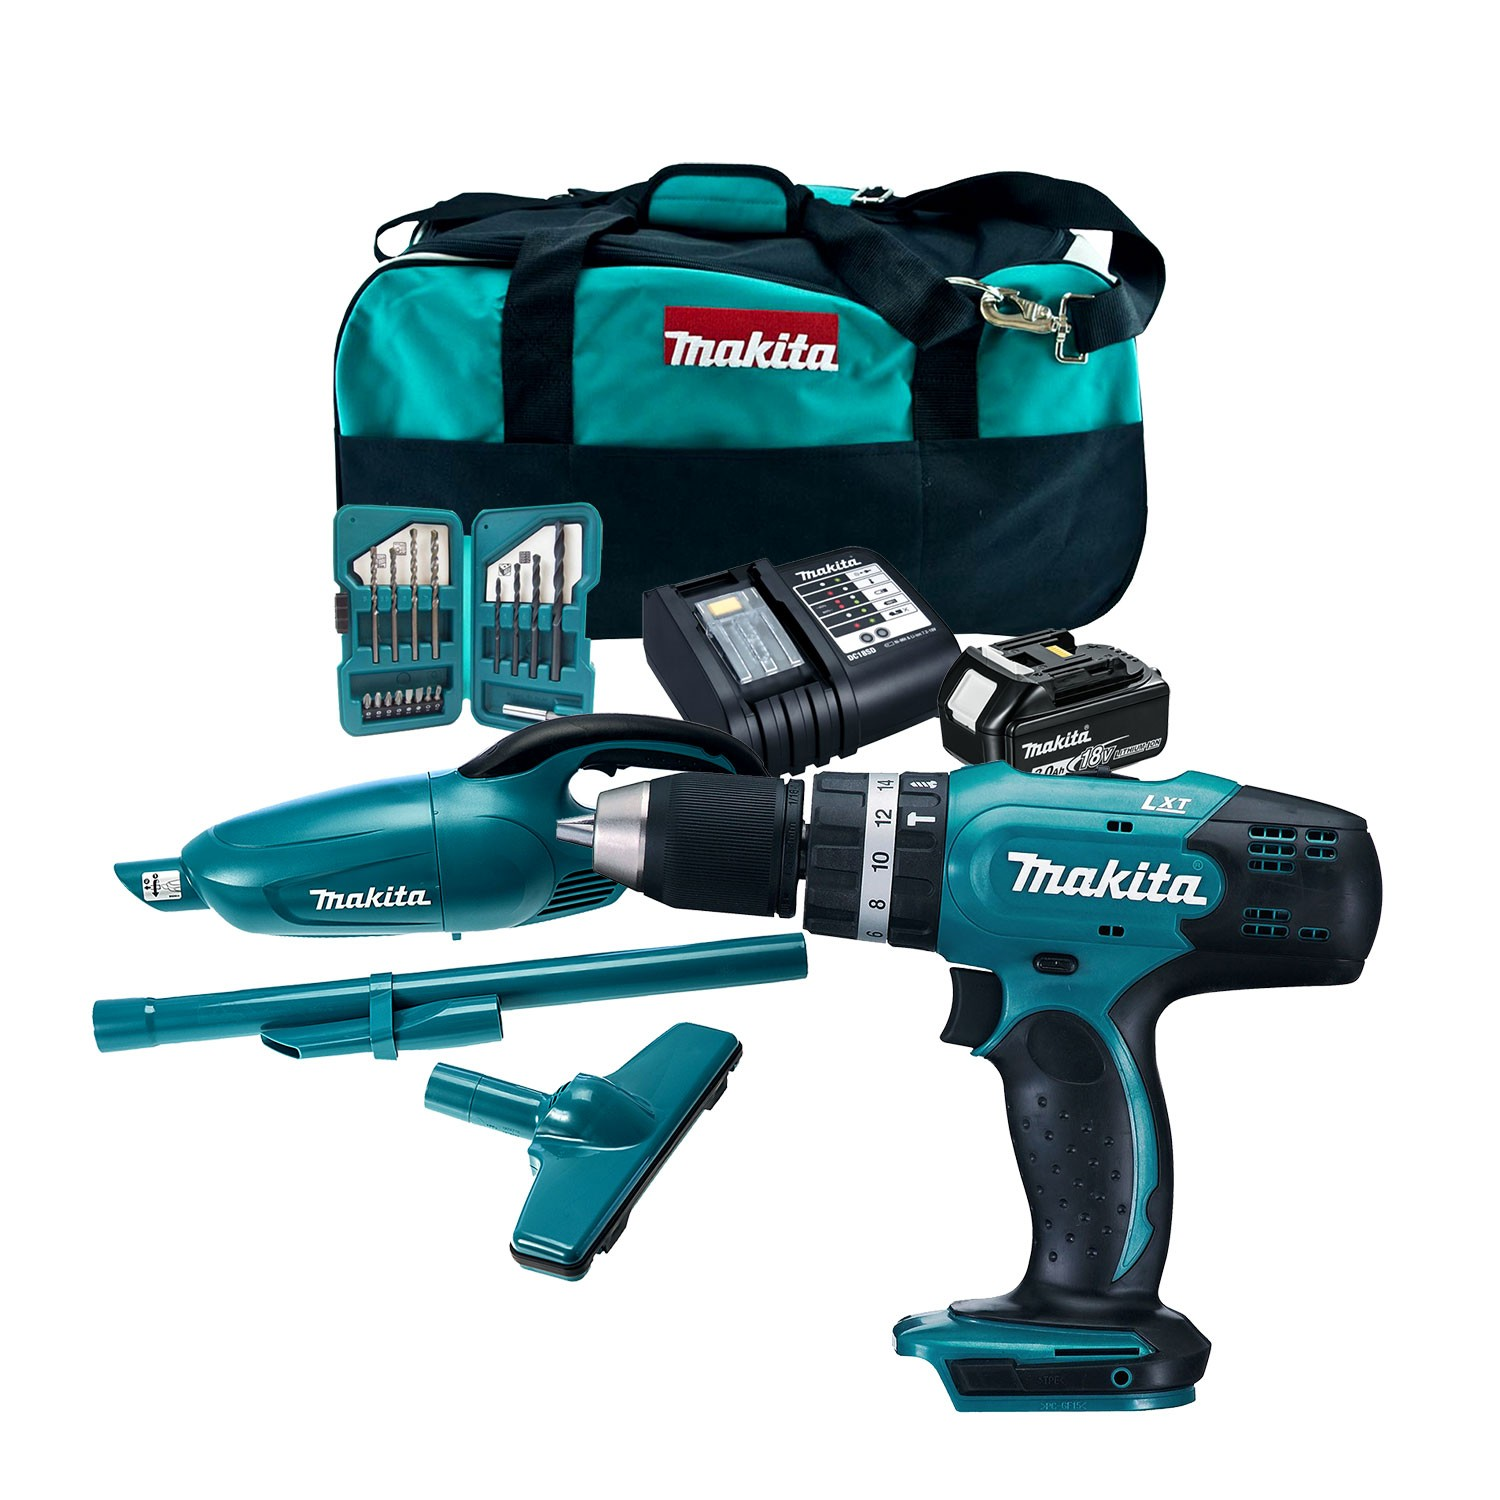 makita dlx2056sx1 18v twin kit inc dhp453 combi drill. Black Bedroom Furniture Sets. Home Design Ideas